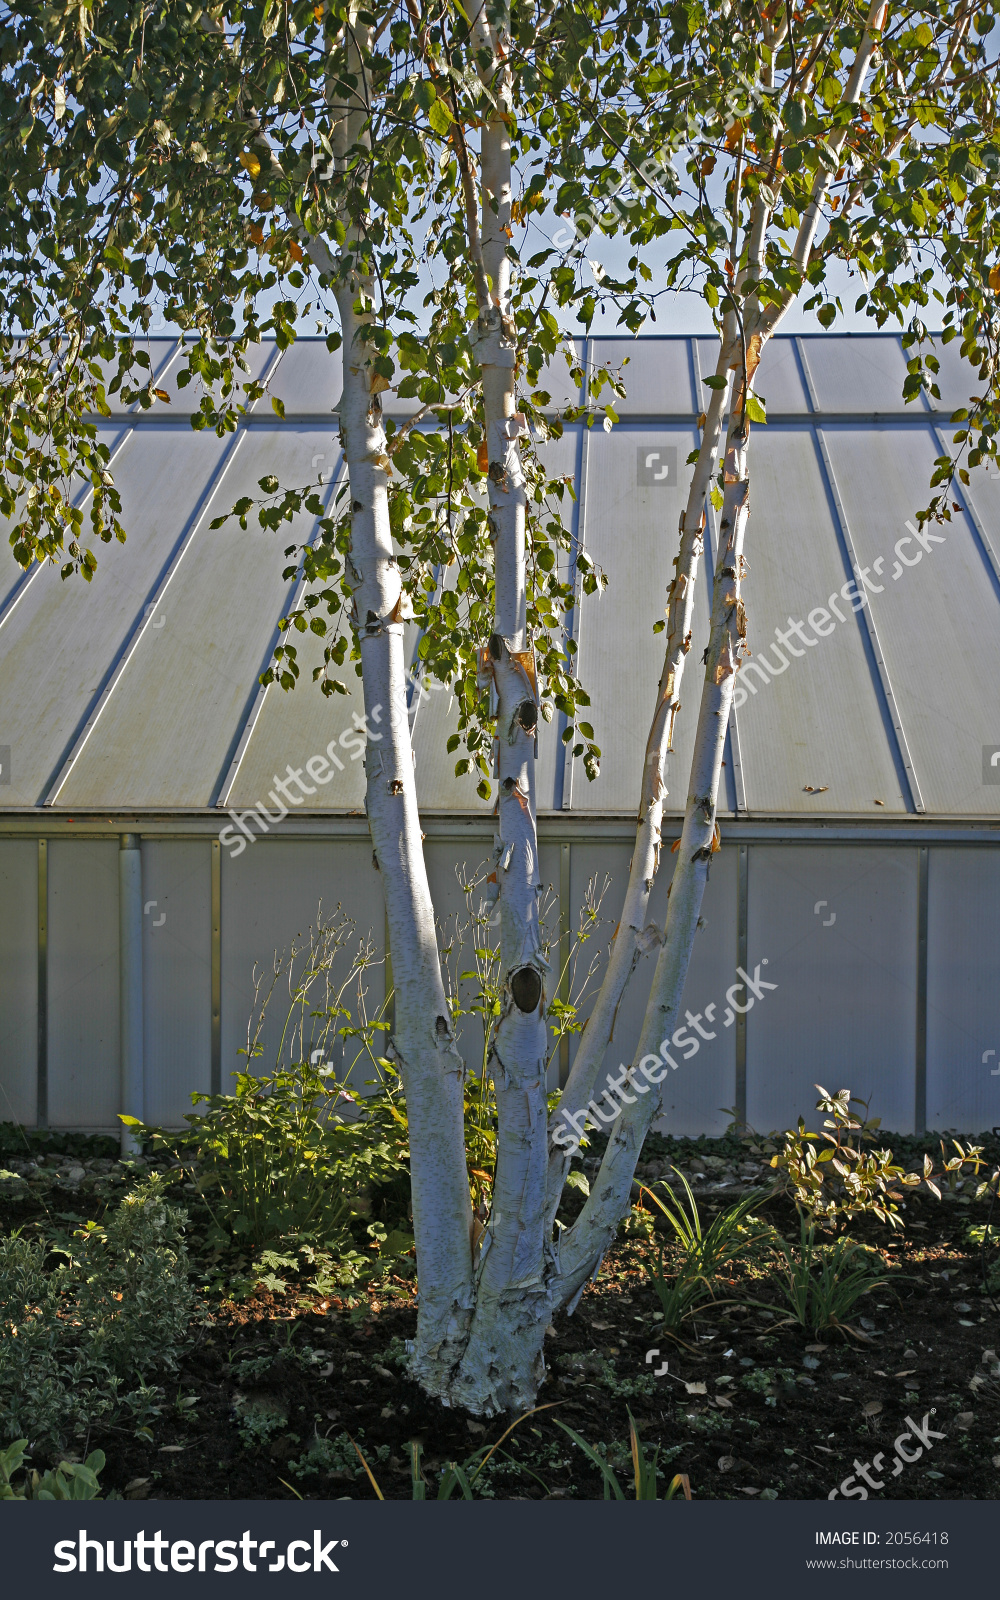 Betula Utilis Or Himalaya Birch In Front Of Green House. Stock.